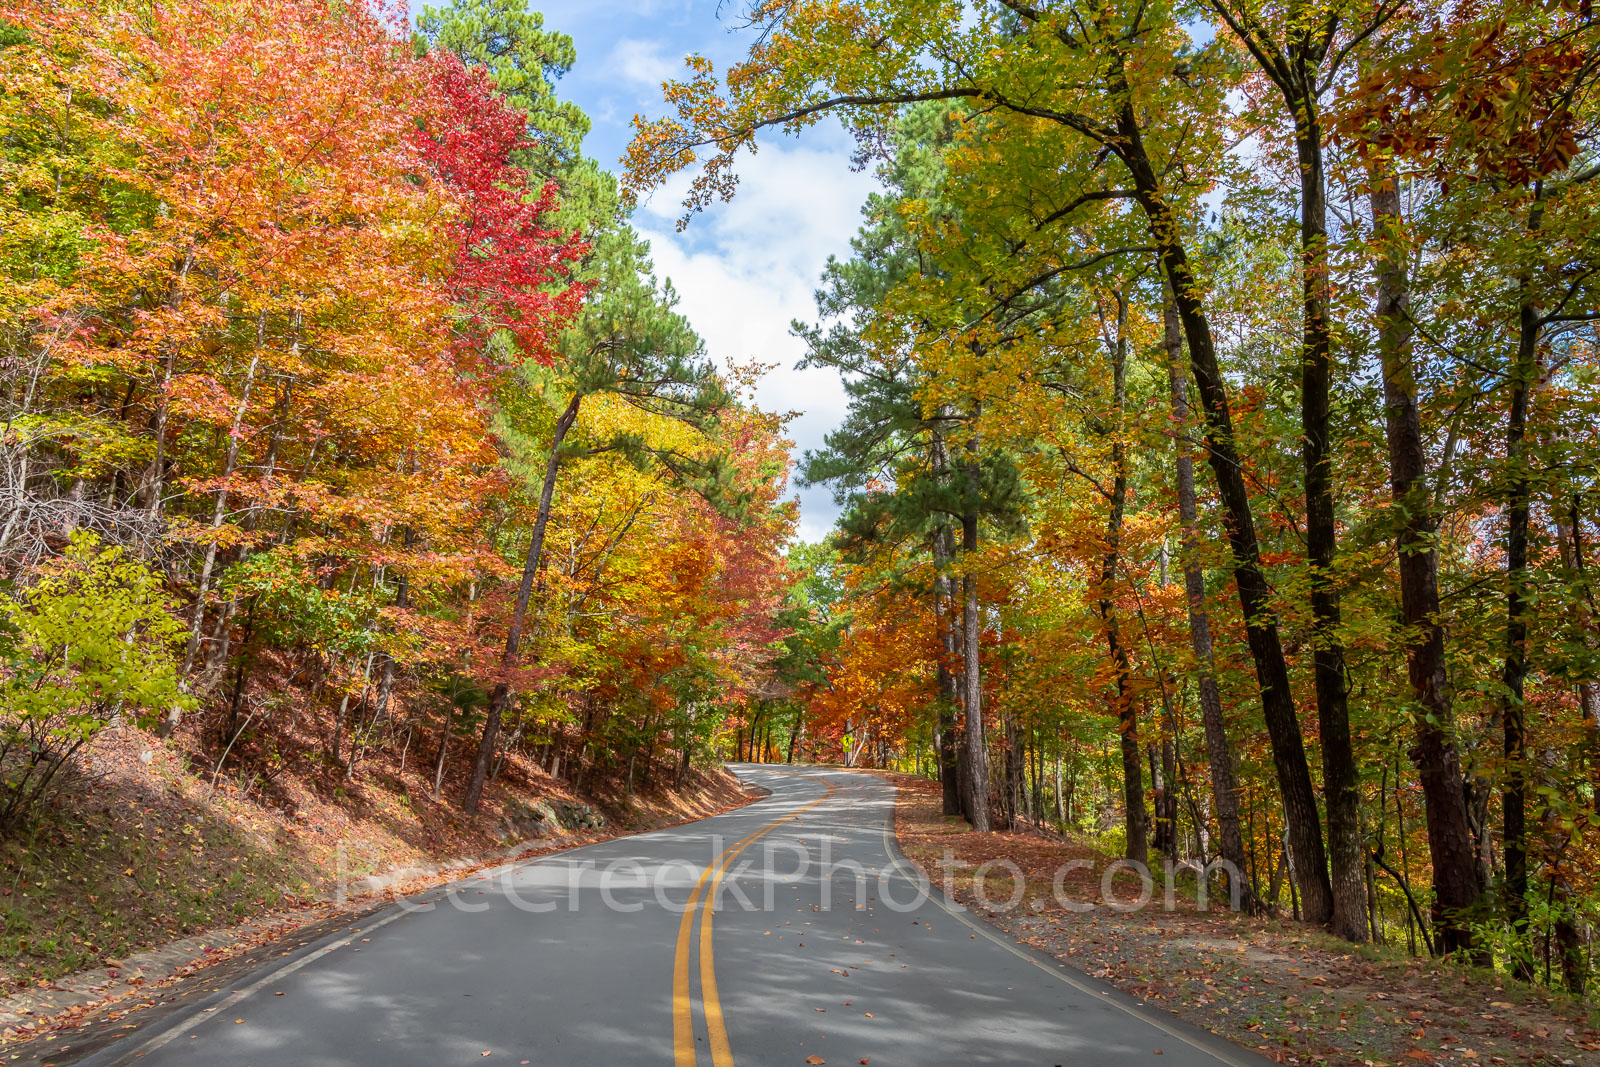 Fall Scenery, Drive, autumn. season, fall, fall colors, fall color, twist, color, maples, red, orange, yellows, black hickory, pine, pop, autumn colors,foliage, leaves, roadtrip, road, trip, arkansas,